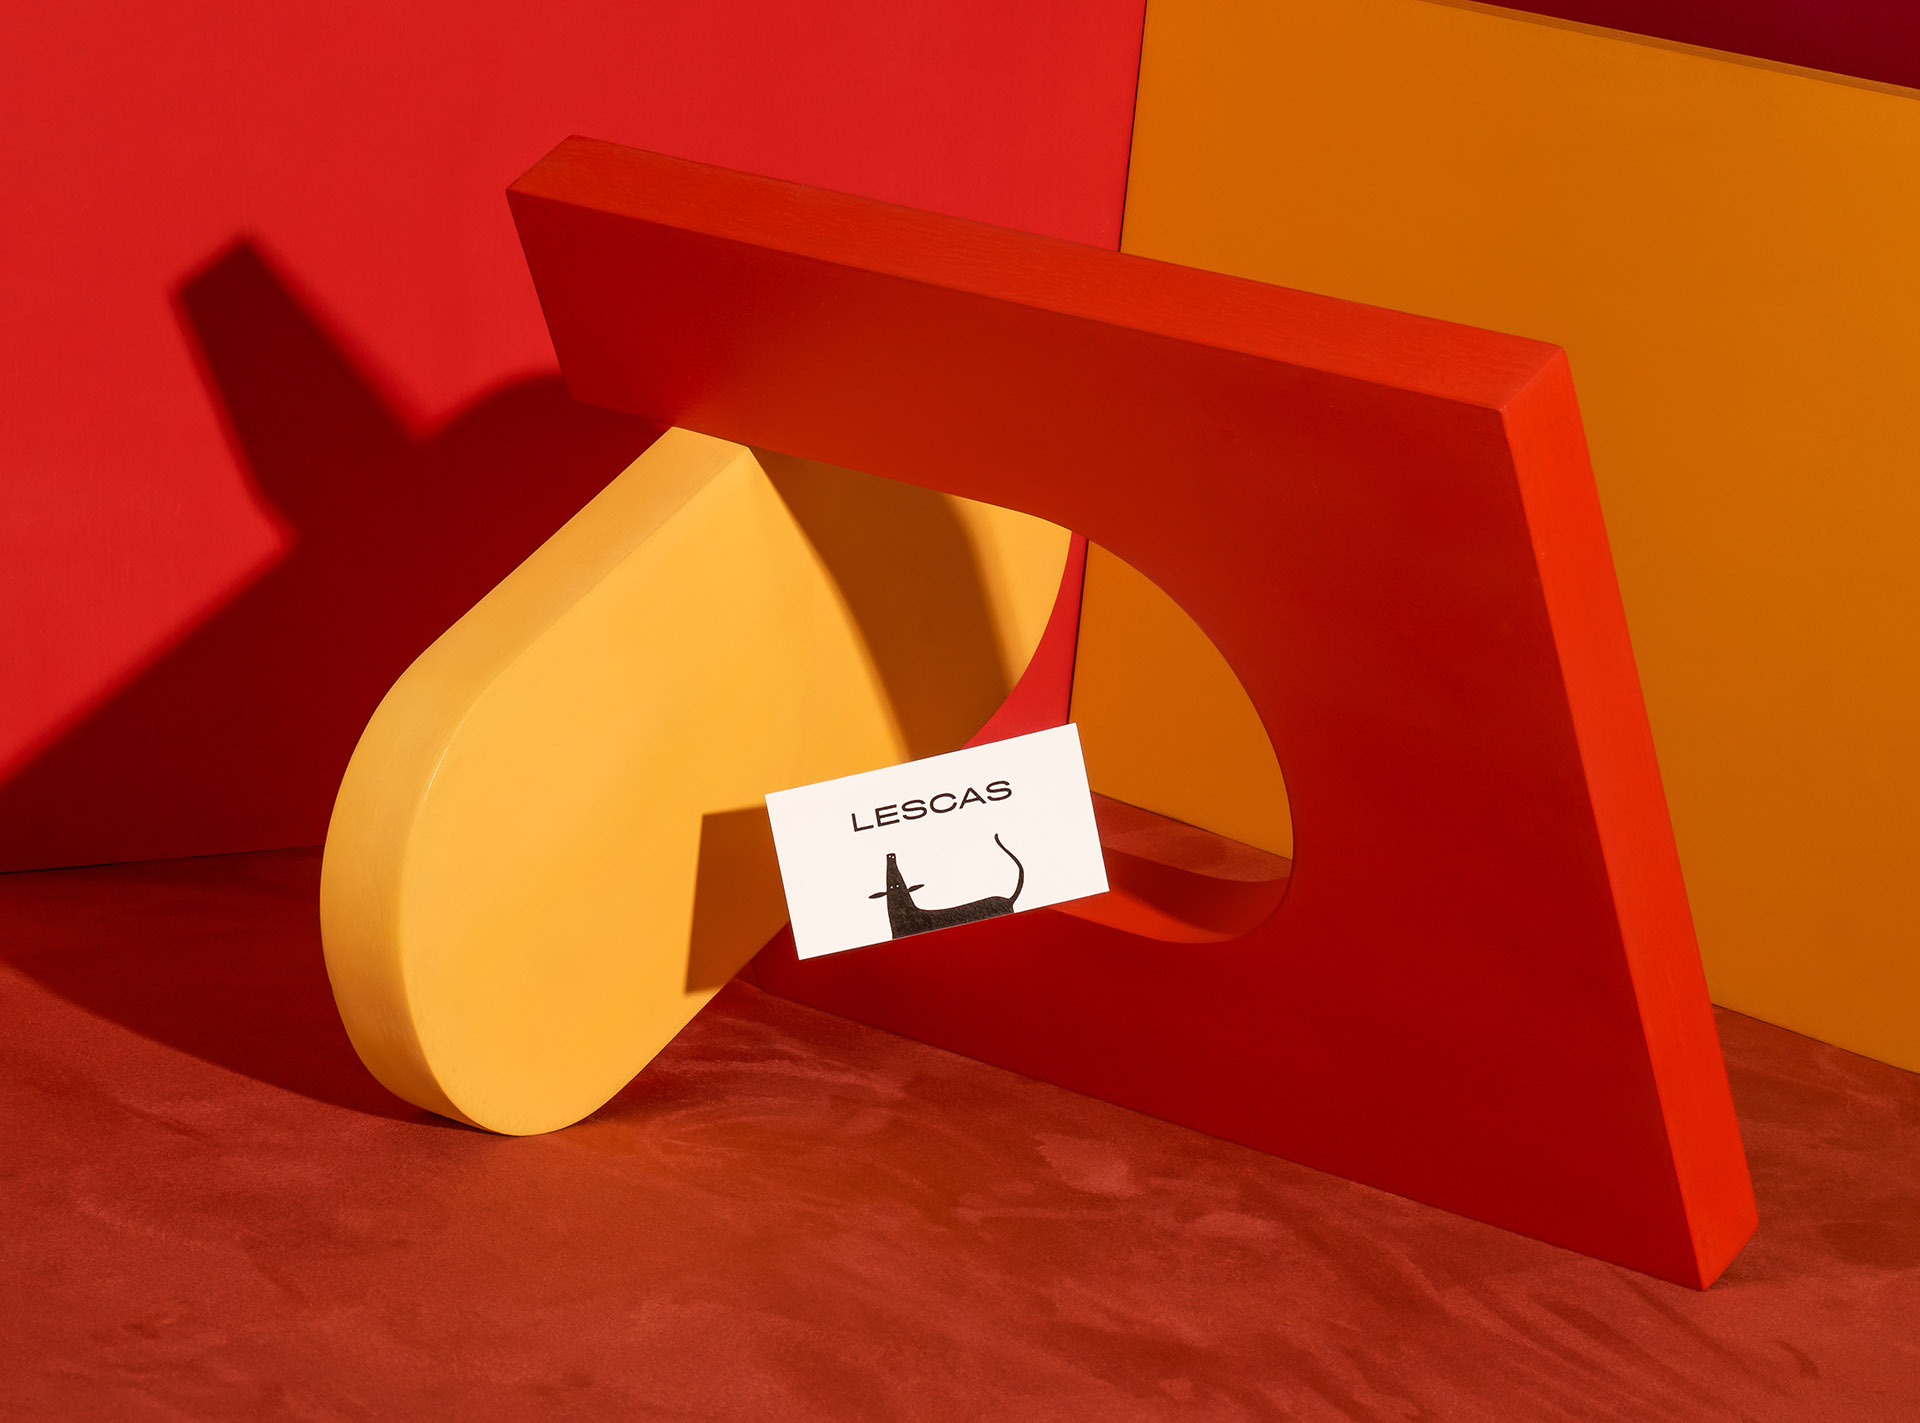 Branding for Mexican Artist Damián Lescas Created by Manifiesto